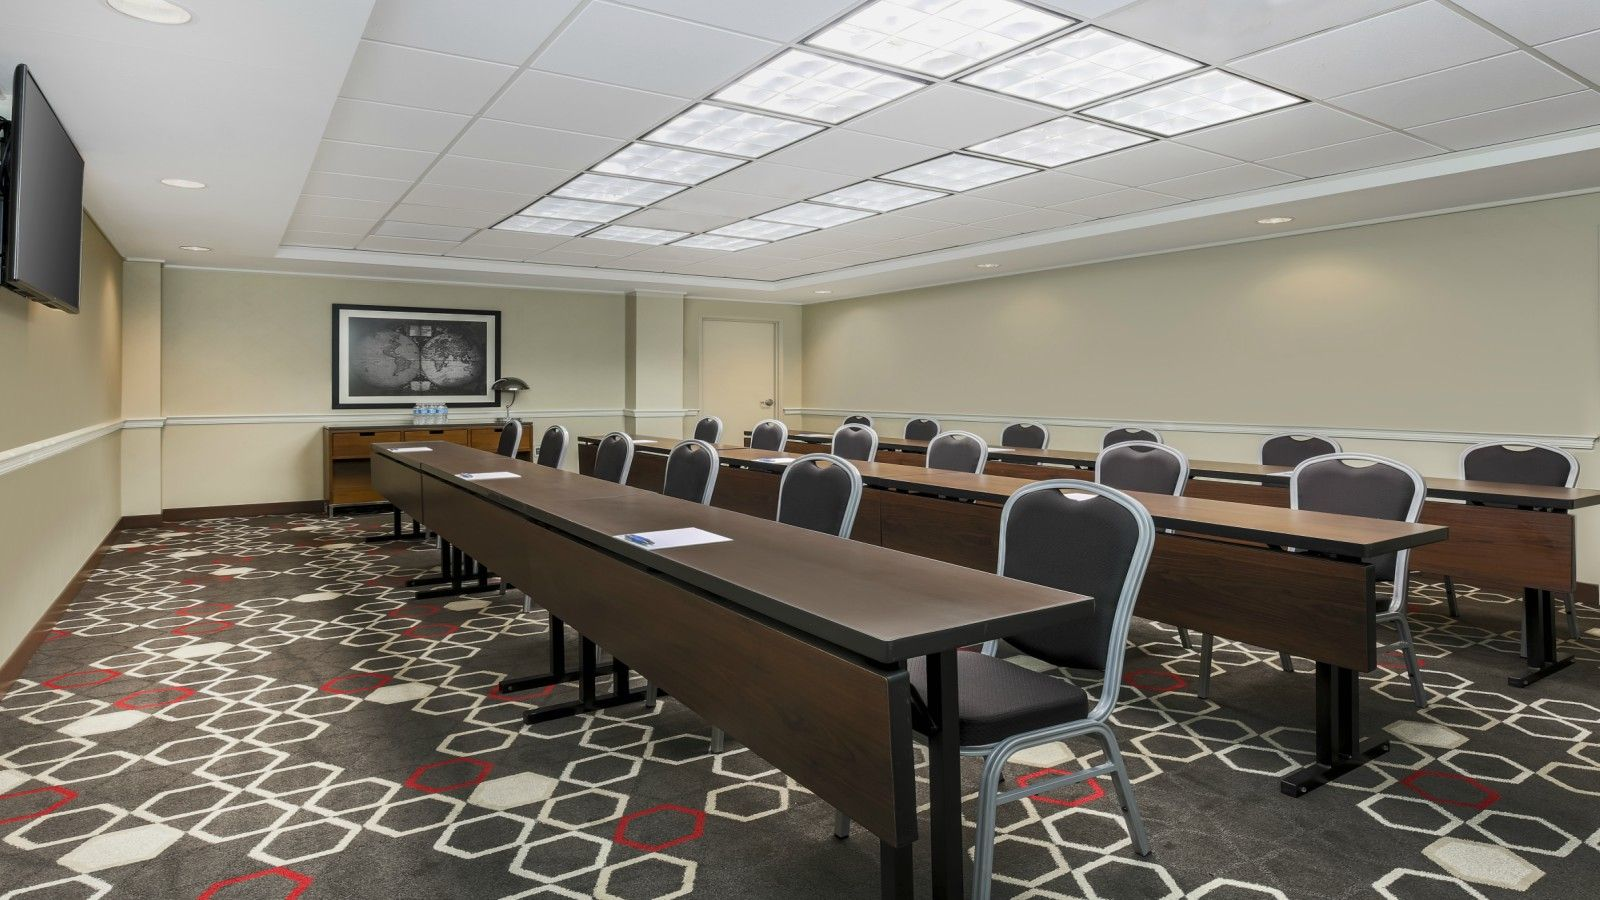 Meeting Rooms in Bentonville, AR - Razorback Classrooms